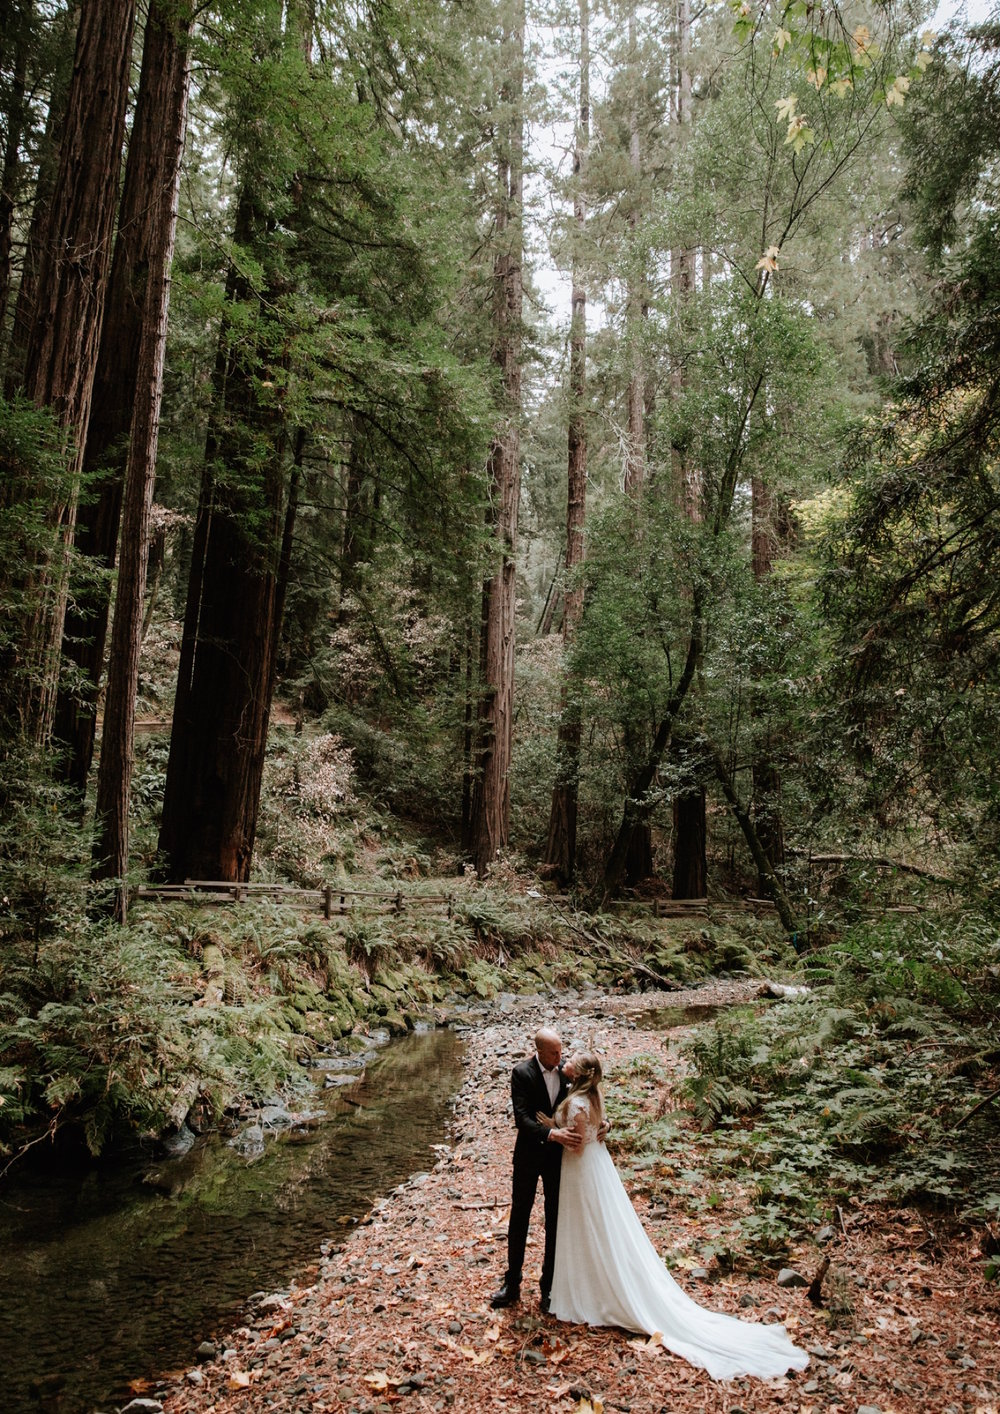 hannah-nick-intimate-muir-woods-wedding-29.jpg